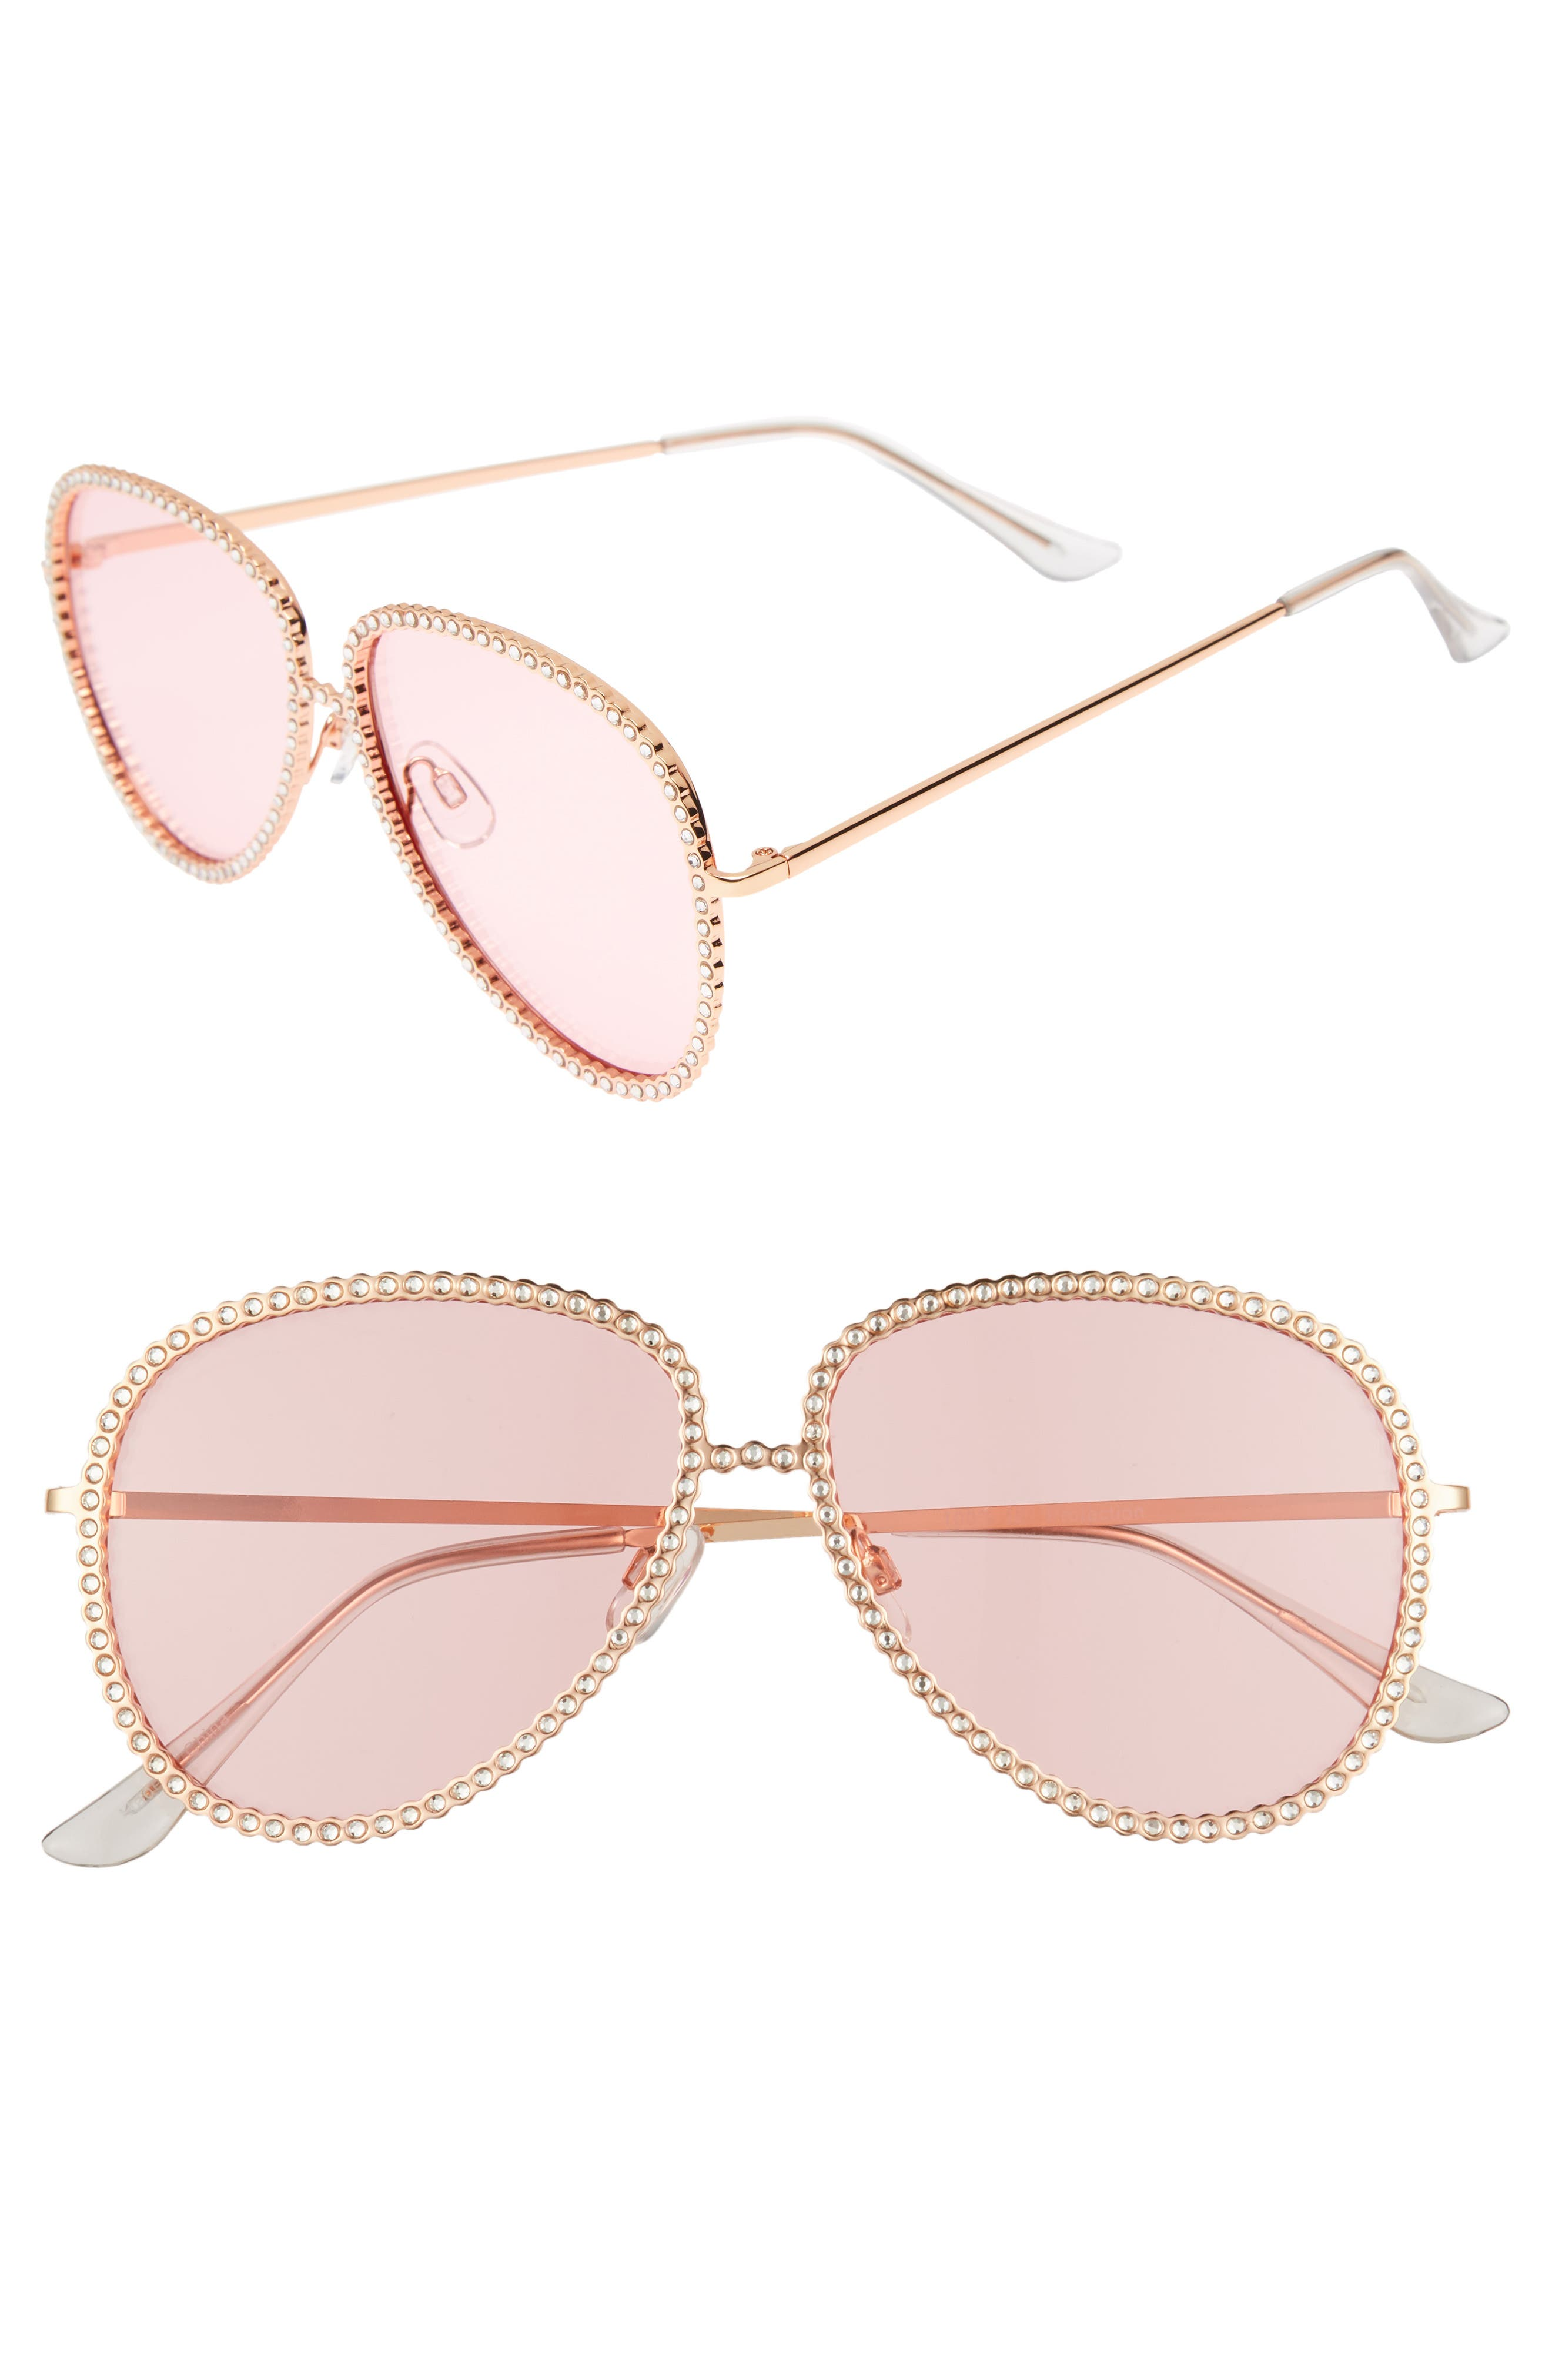 58mm Crystal Aviator Sunglasses,                             Main thumbnail 1, color,